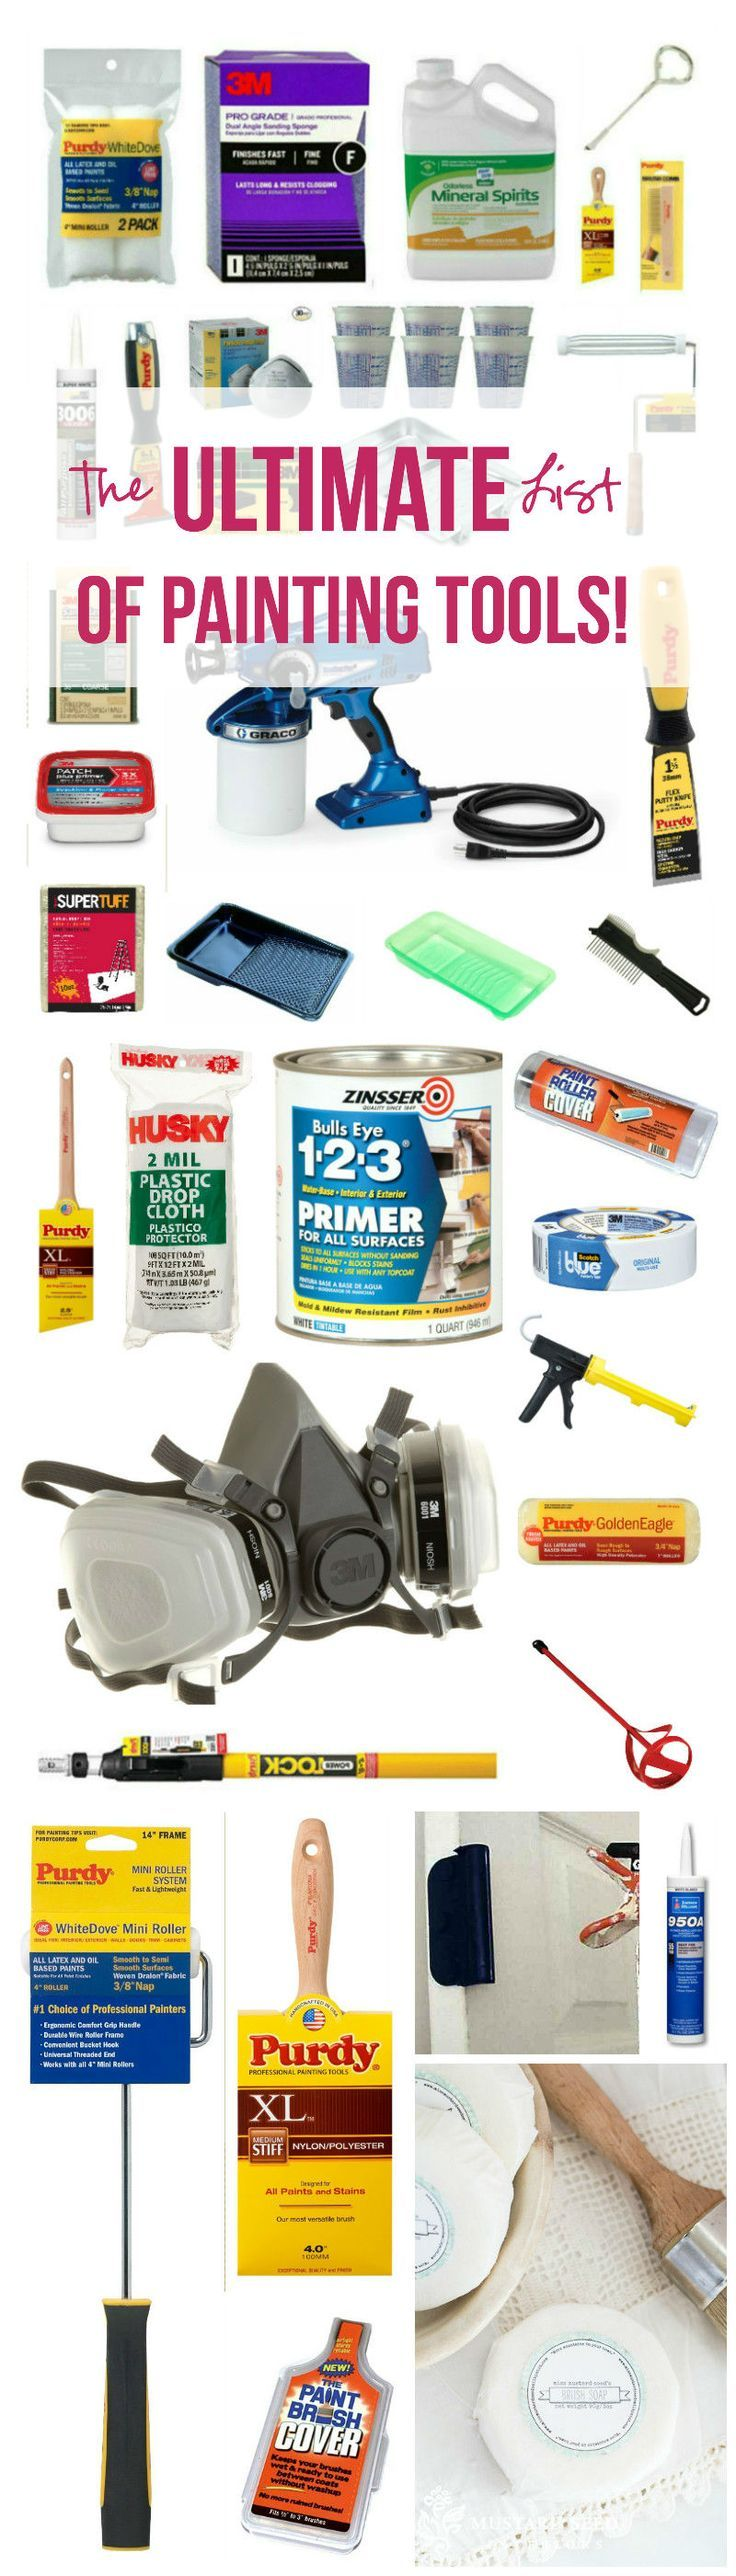 Best 25+ Woodworking tools ideas on Pinterest | Woodworking tips ...